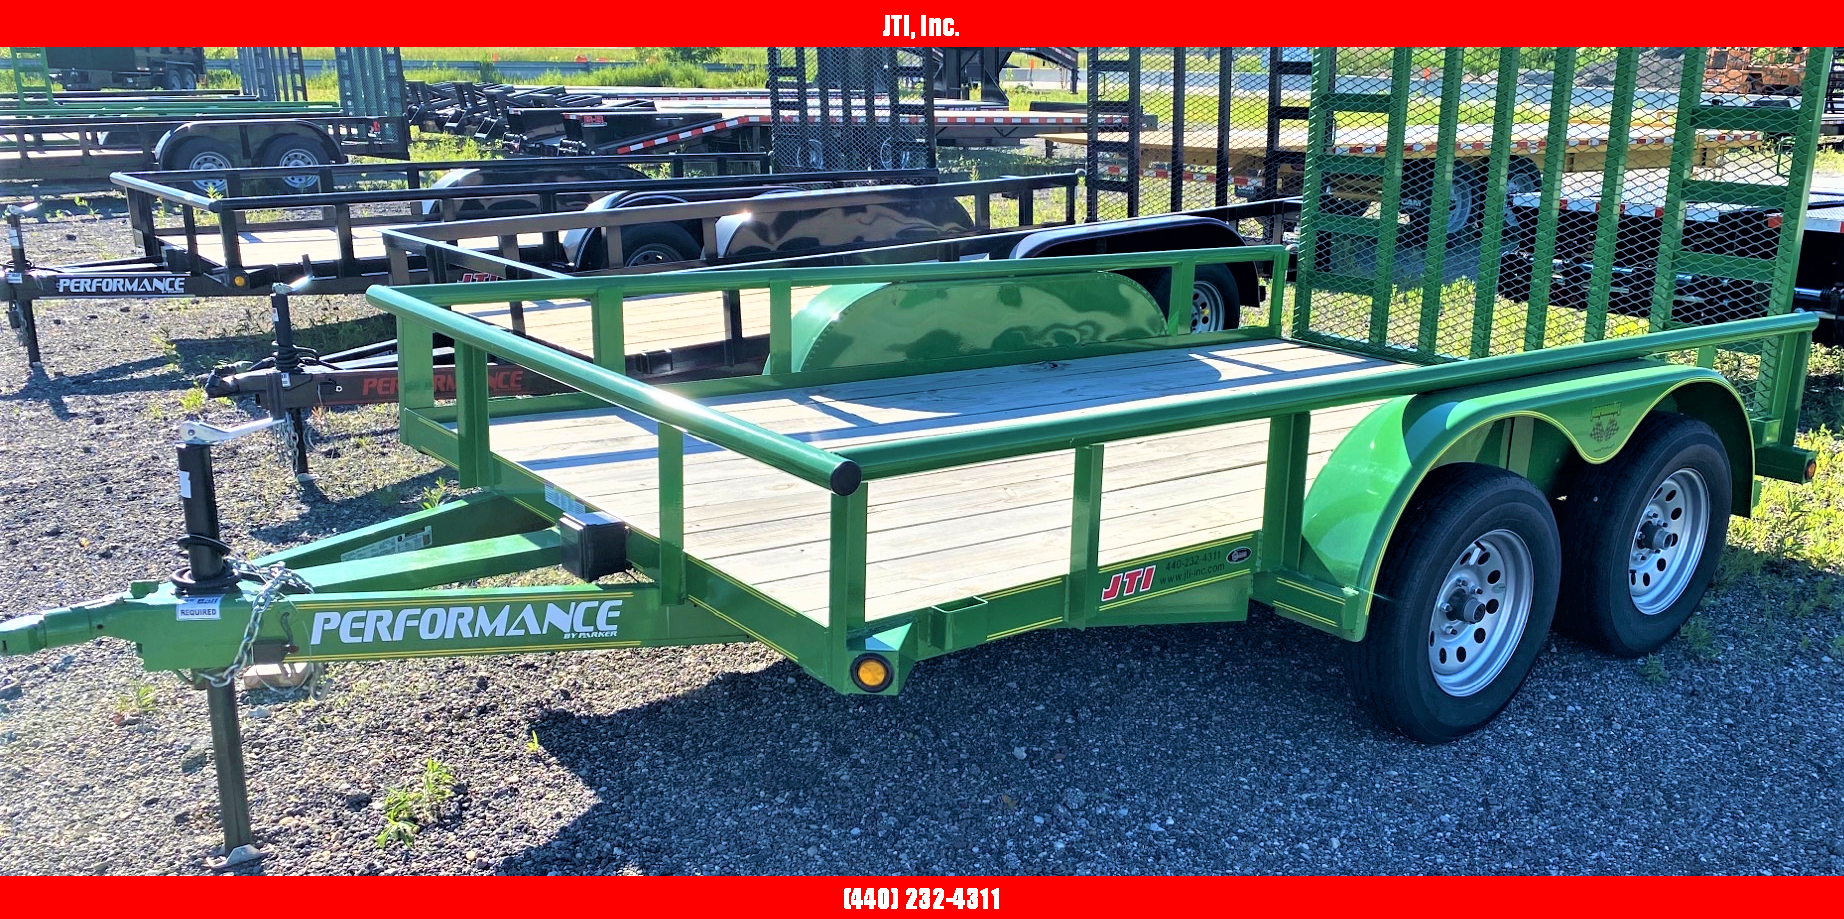 2019 Performance Trailers 7x12 Utility Trailer